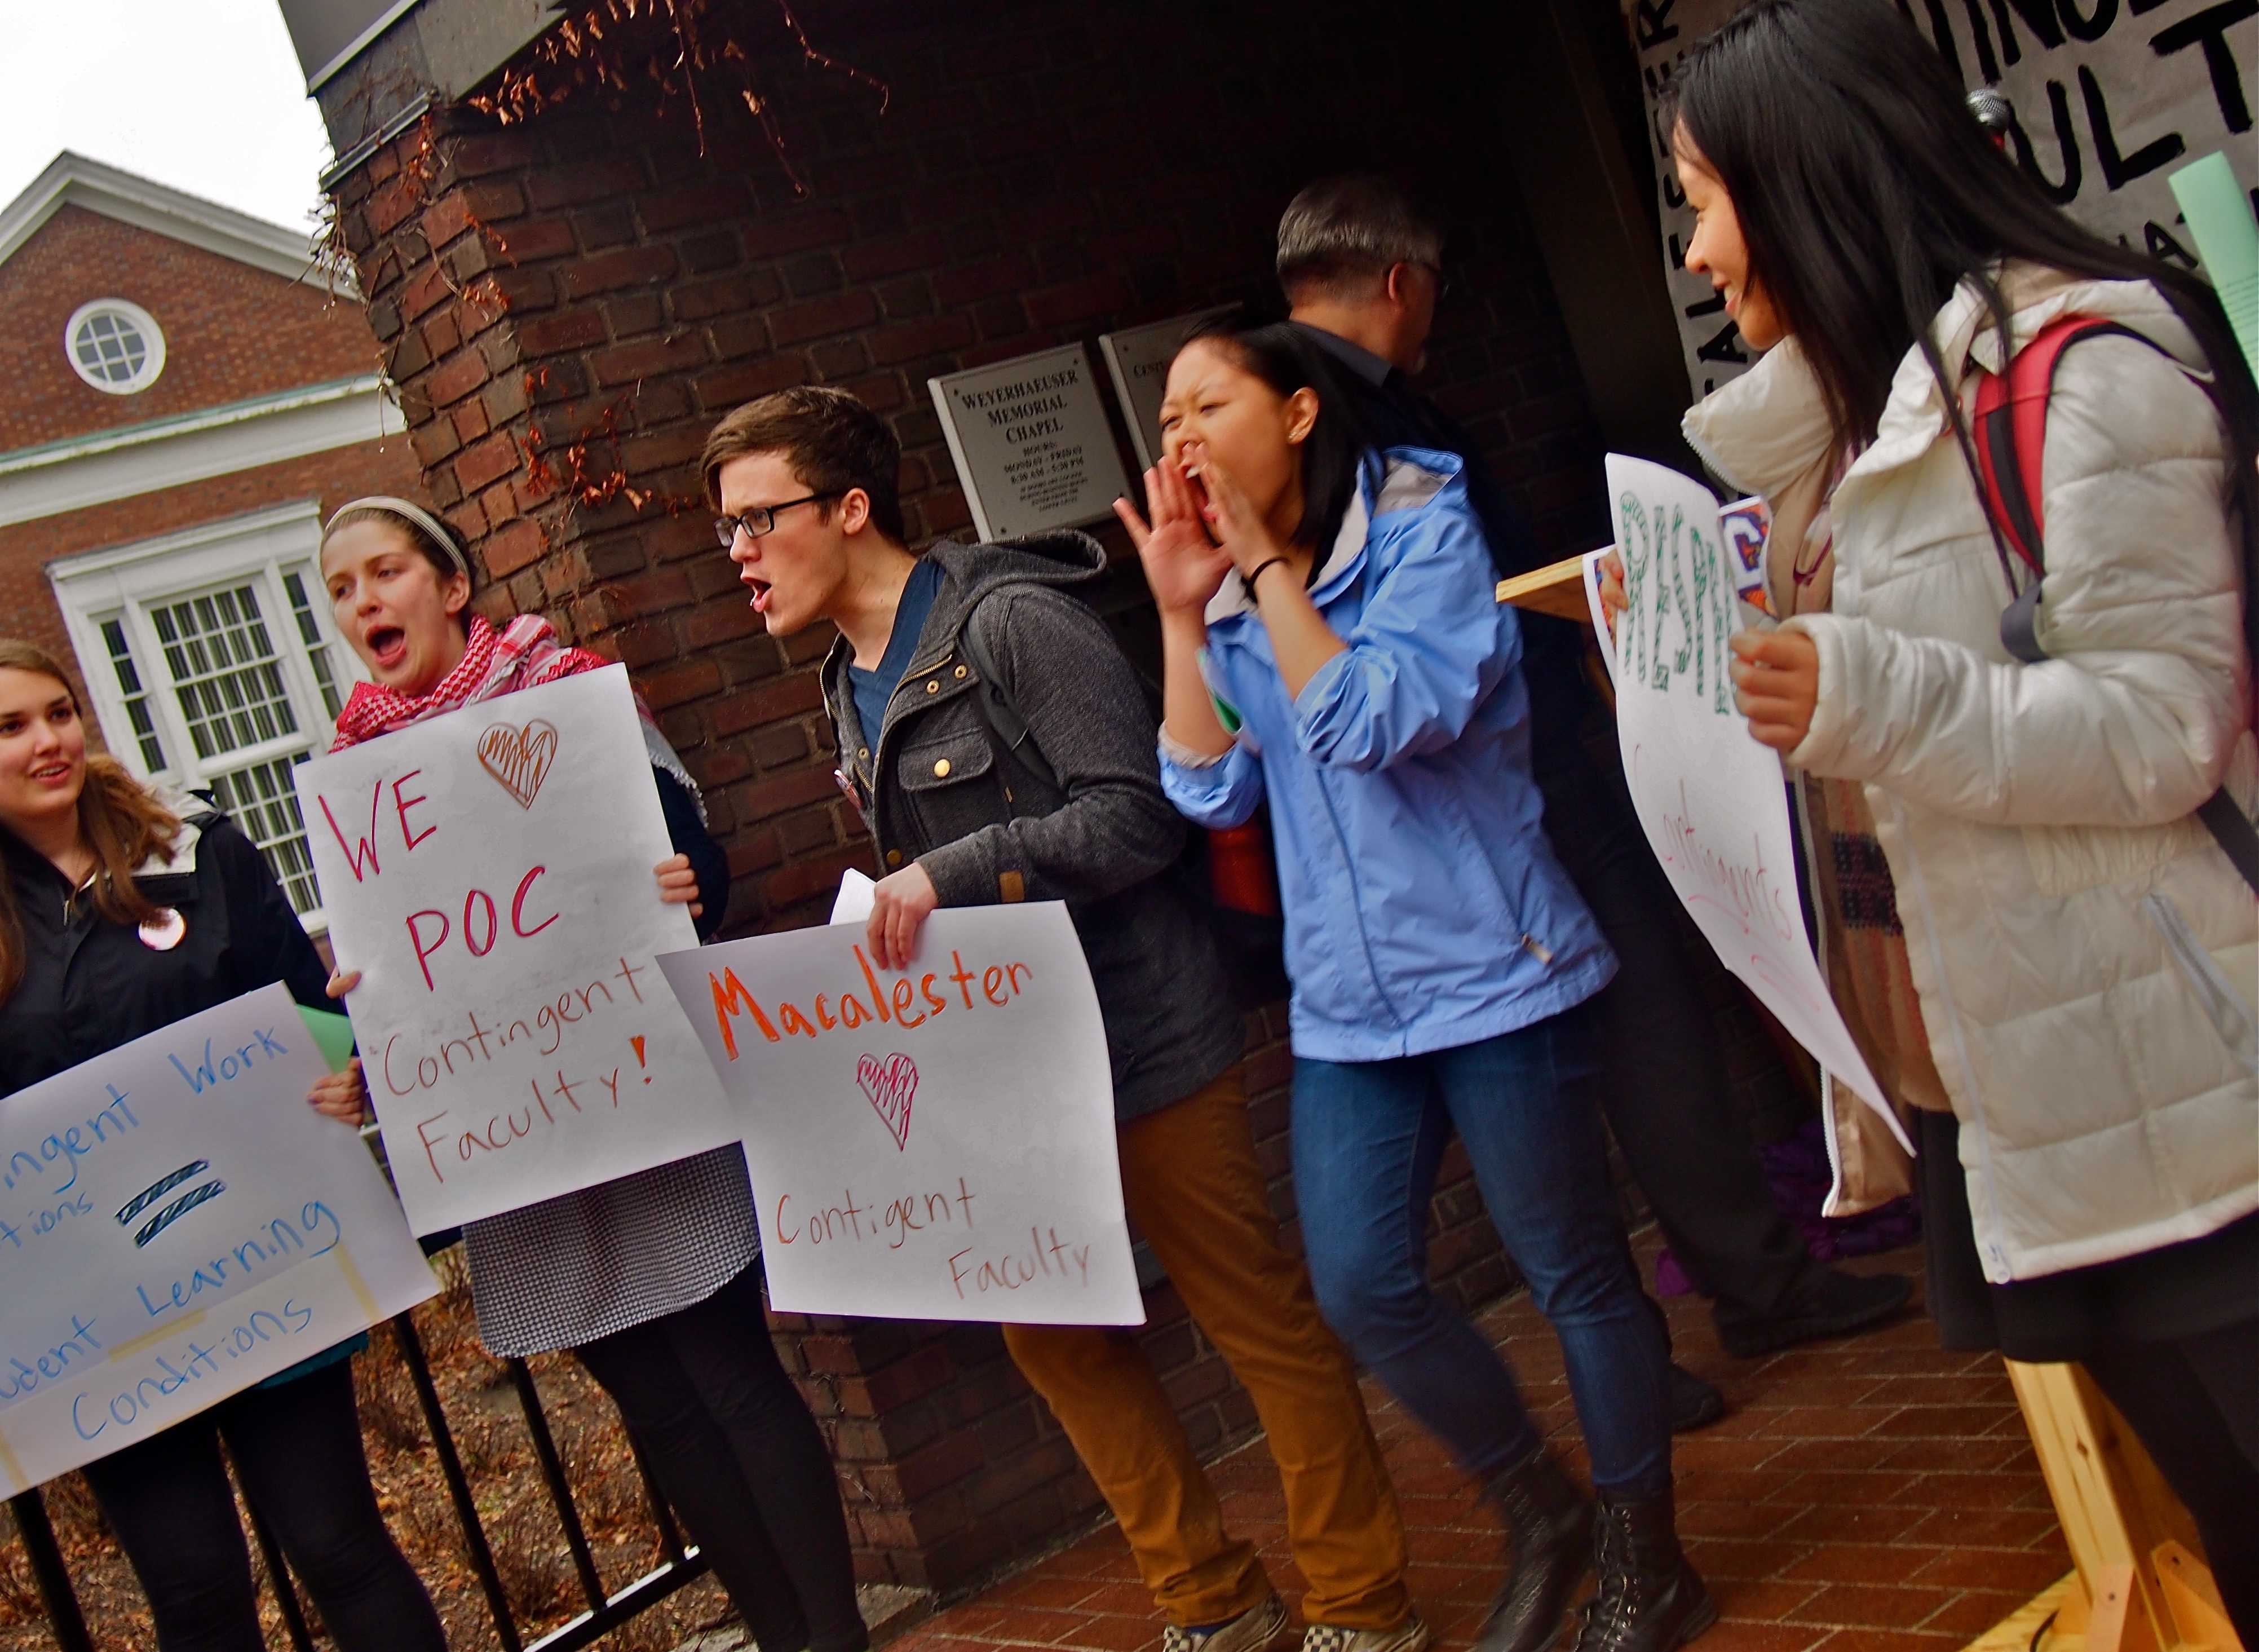 Photos from a rally held outside the CRSL on Thursday afternoon. Keith Ellison spoke, and urged Macalester administration to